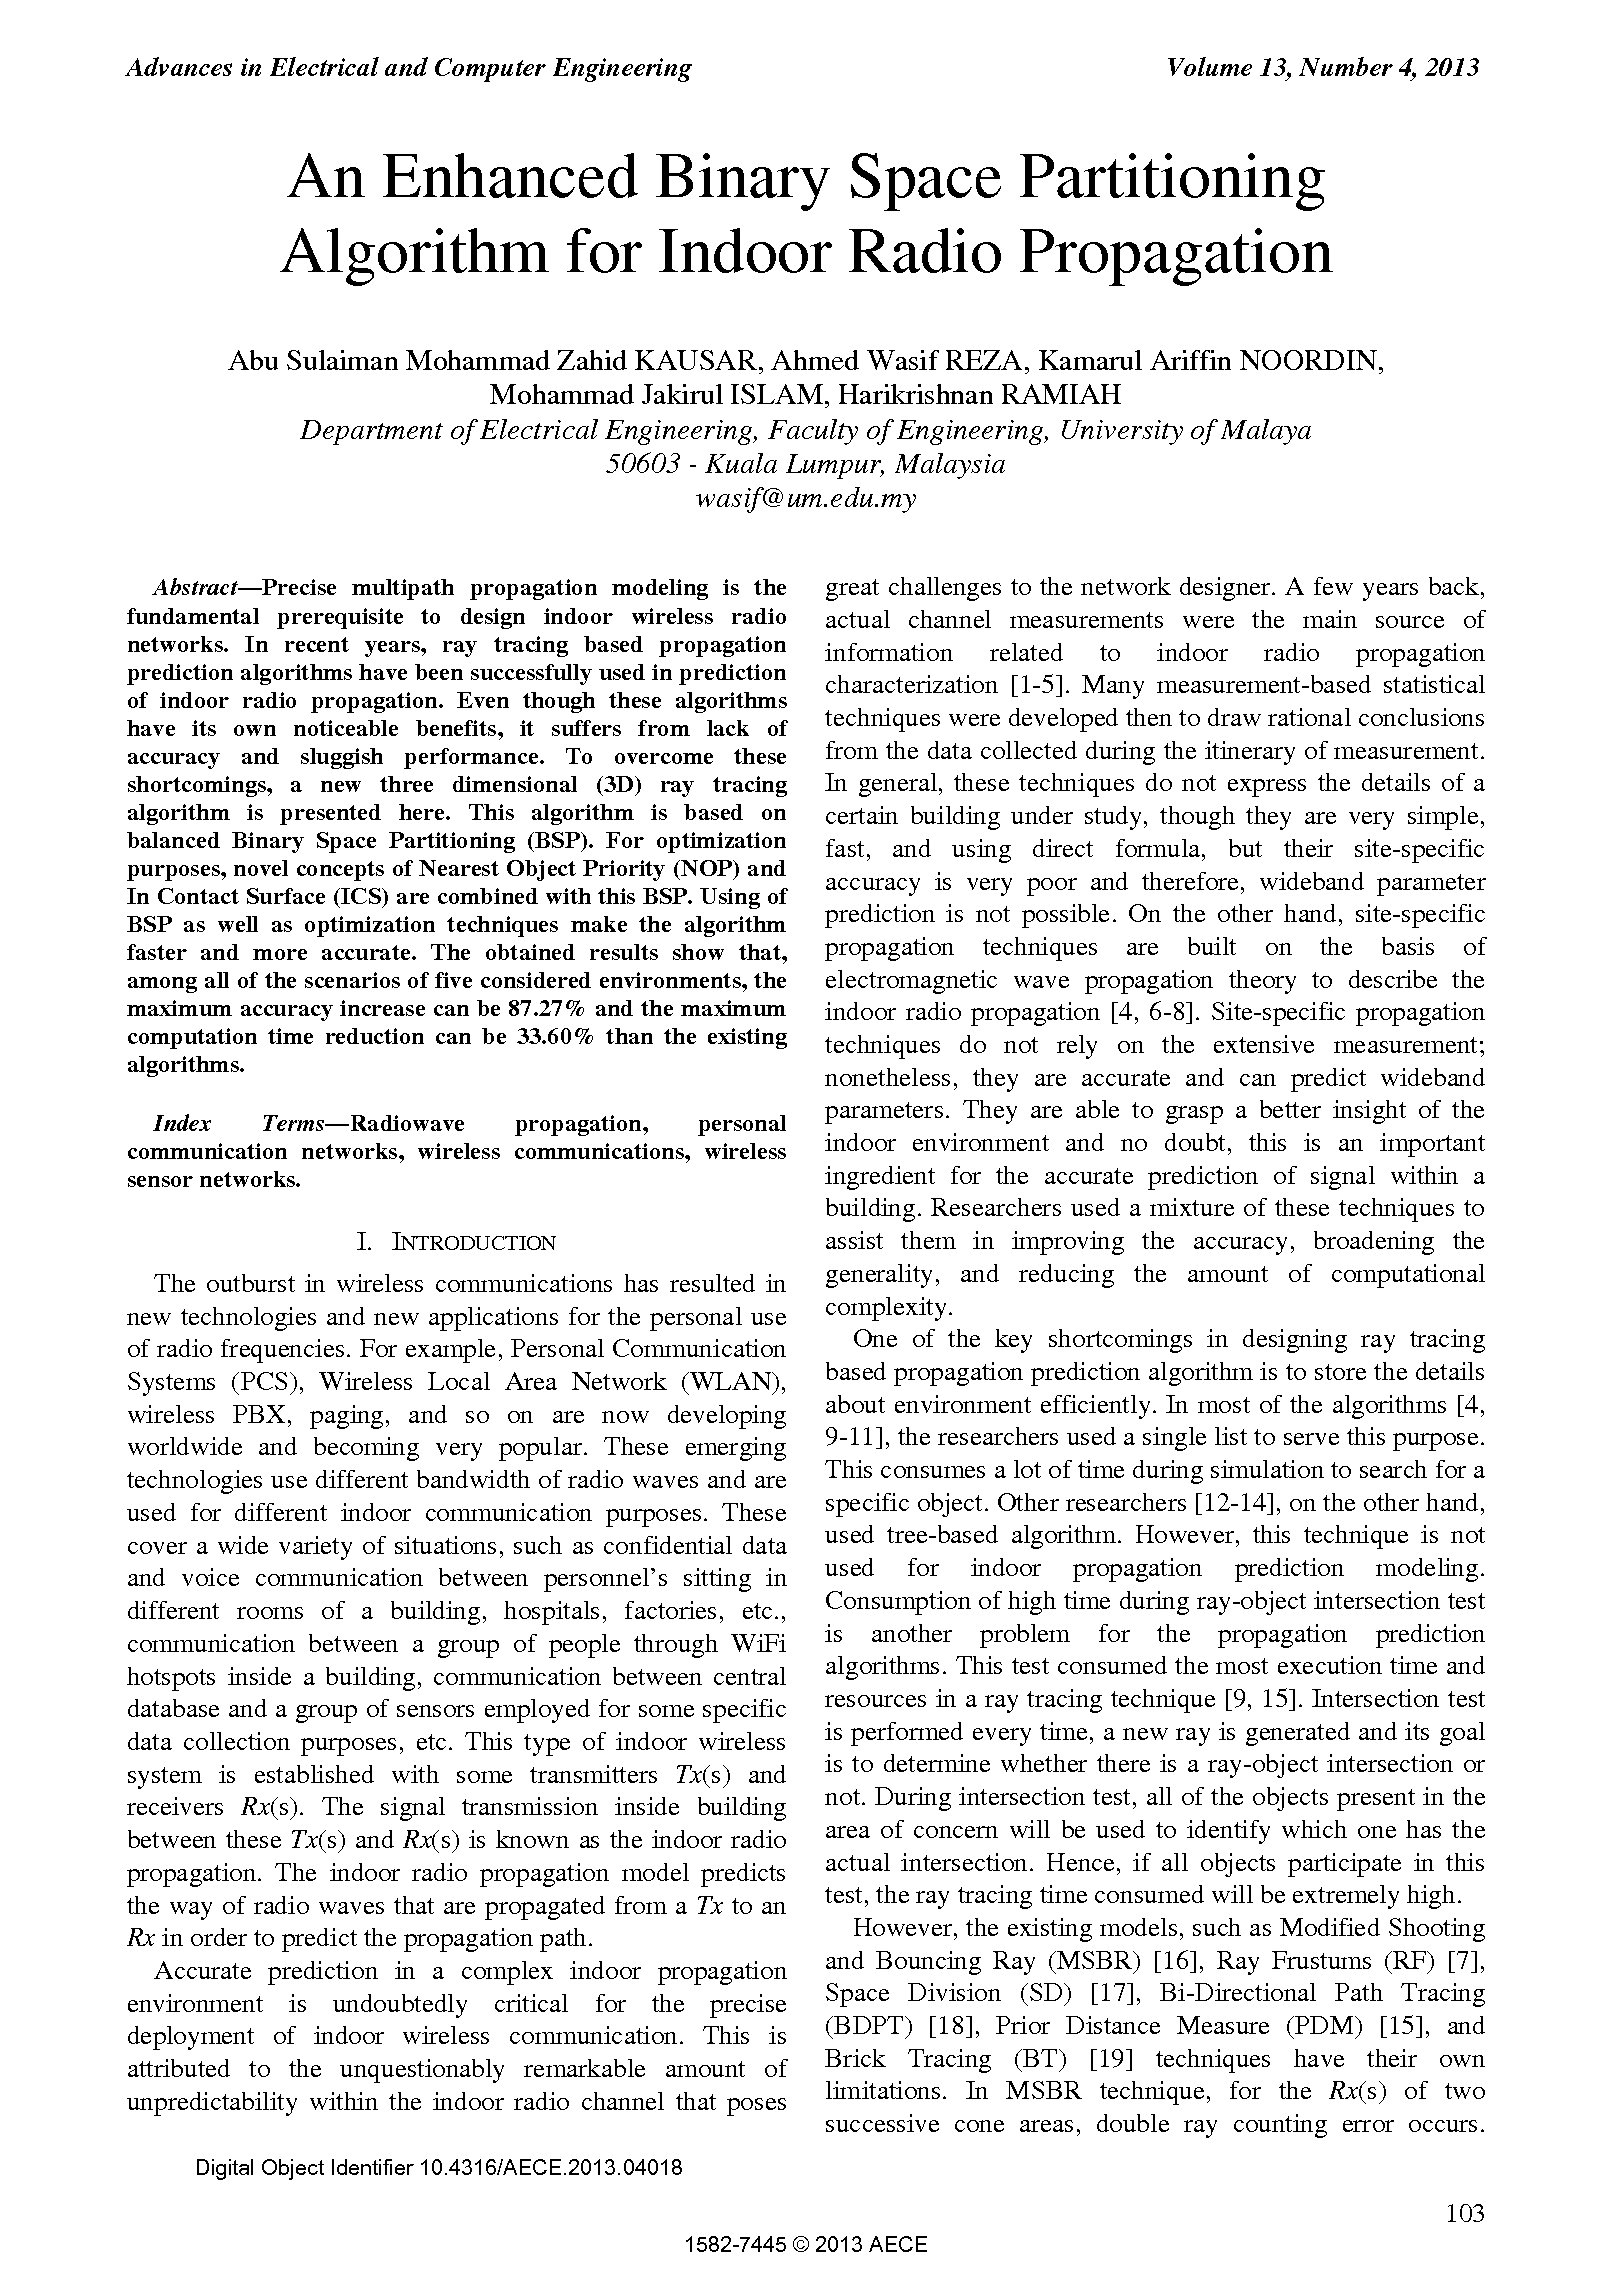 PDF Quickview for paper with DOI:10.4316/AECE.2013.04018